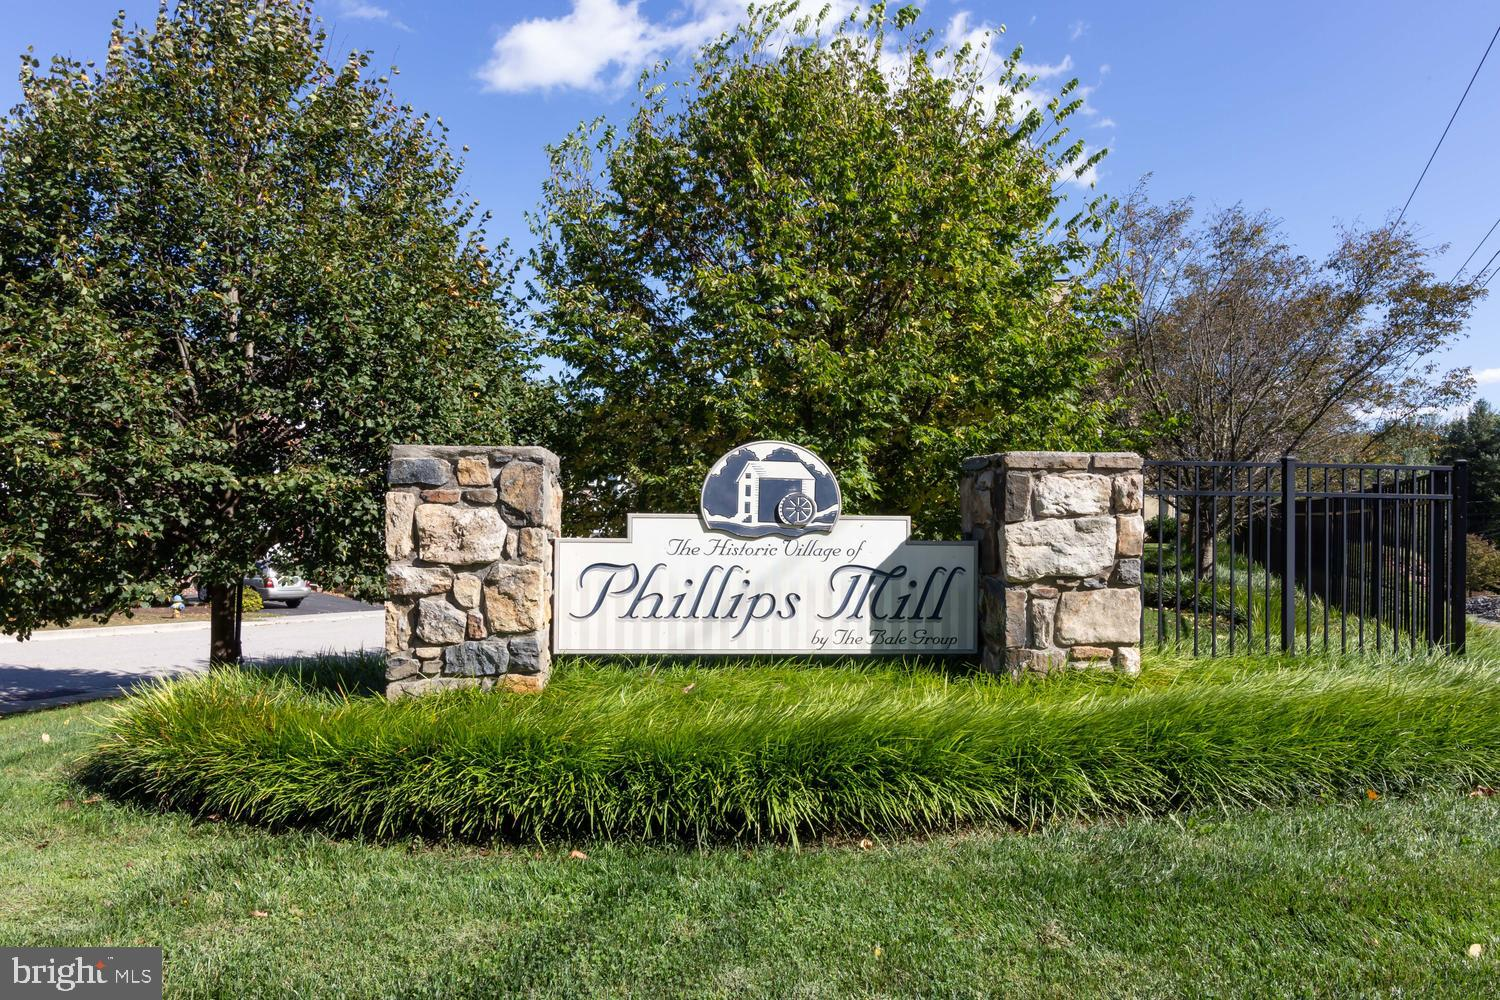 Welcome to The Historic Village of Phillips Mill.  Located in what was formerly a 200-year-old Grist